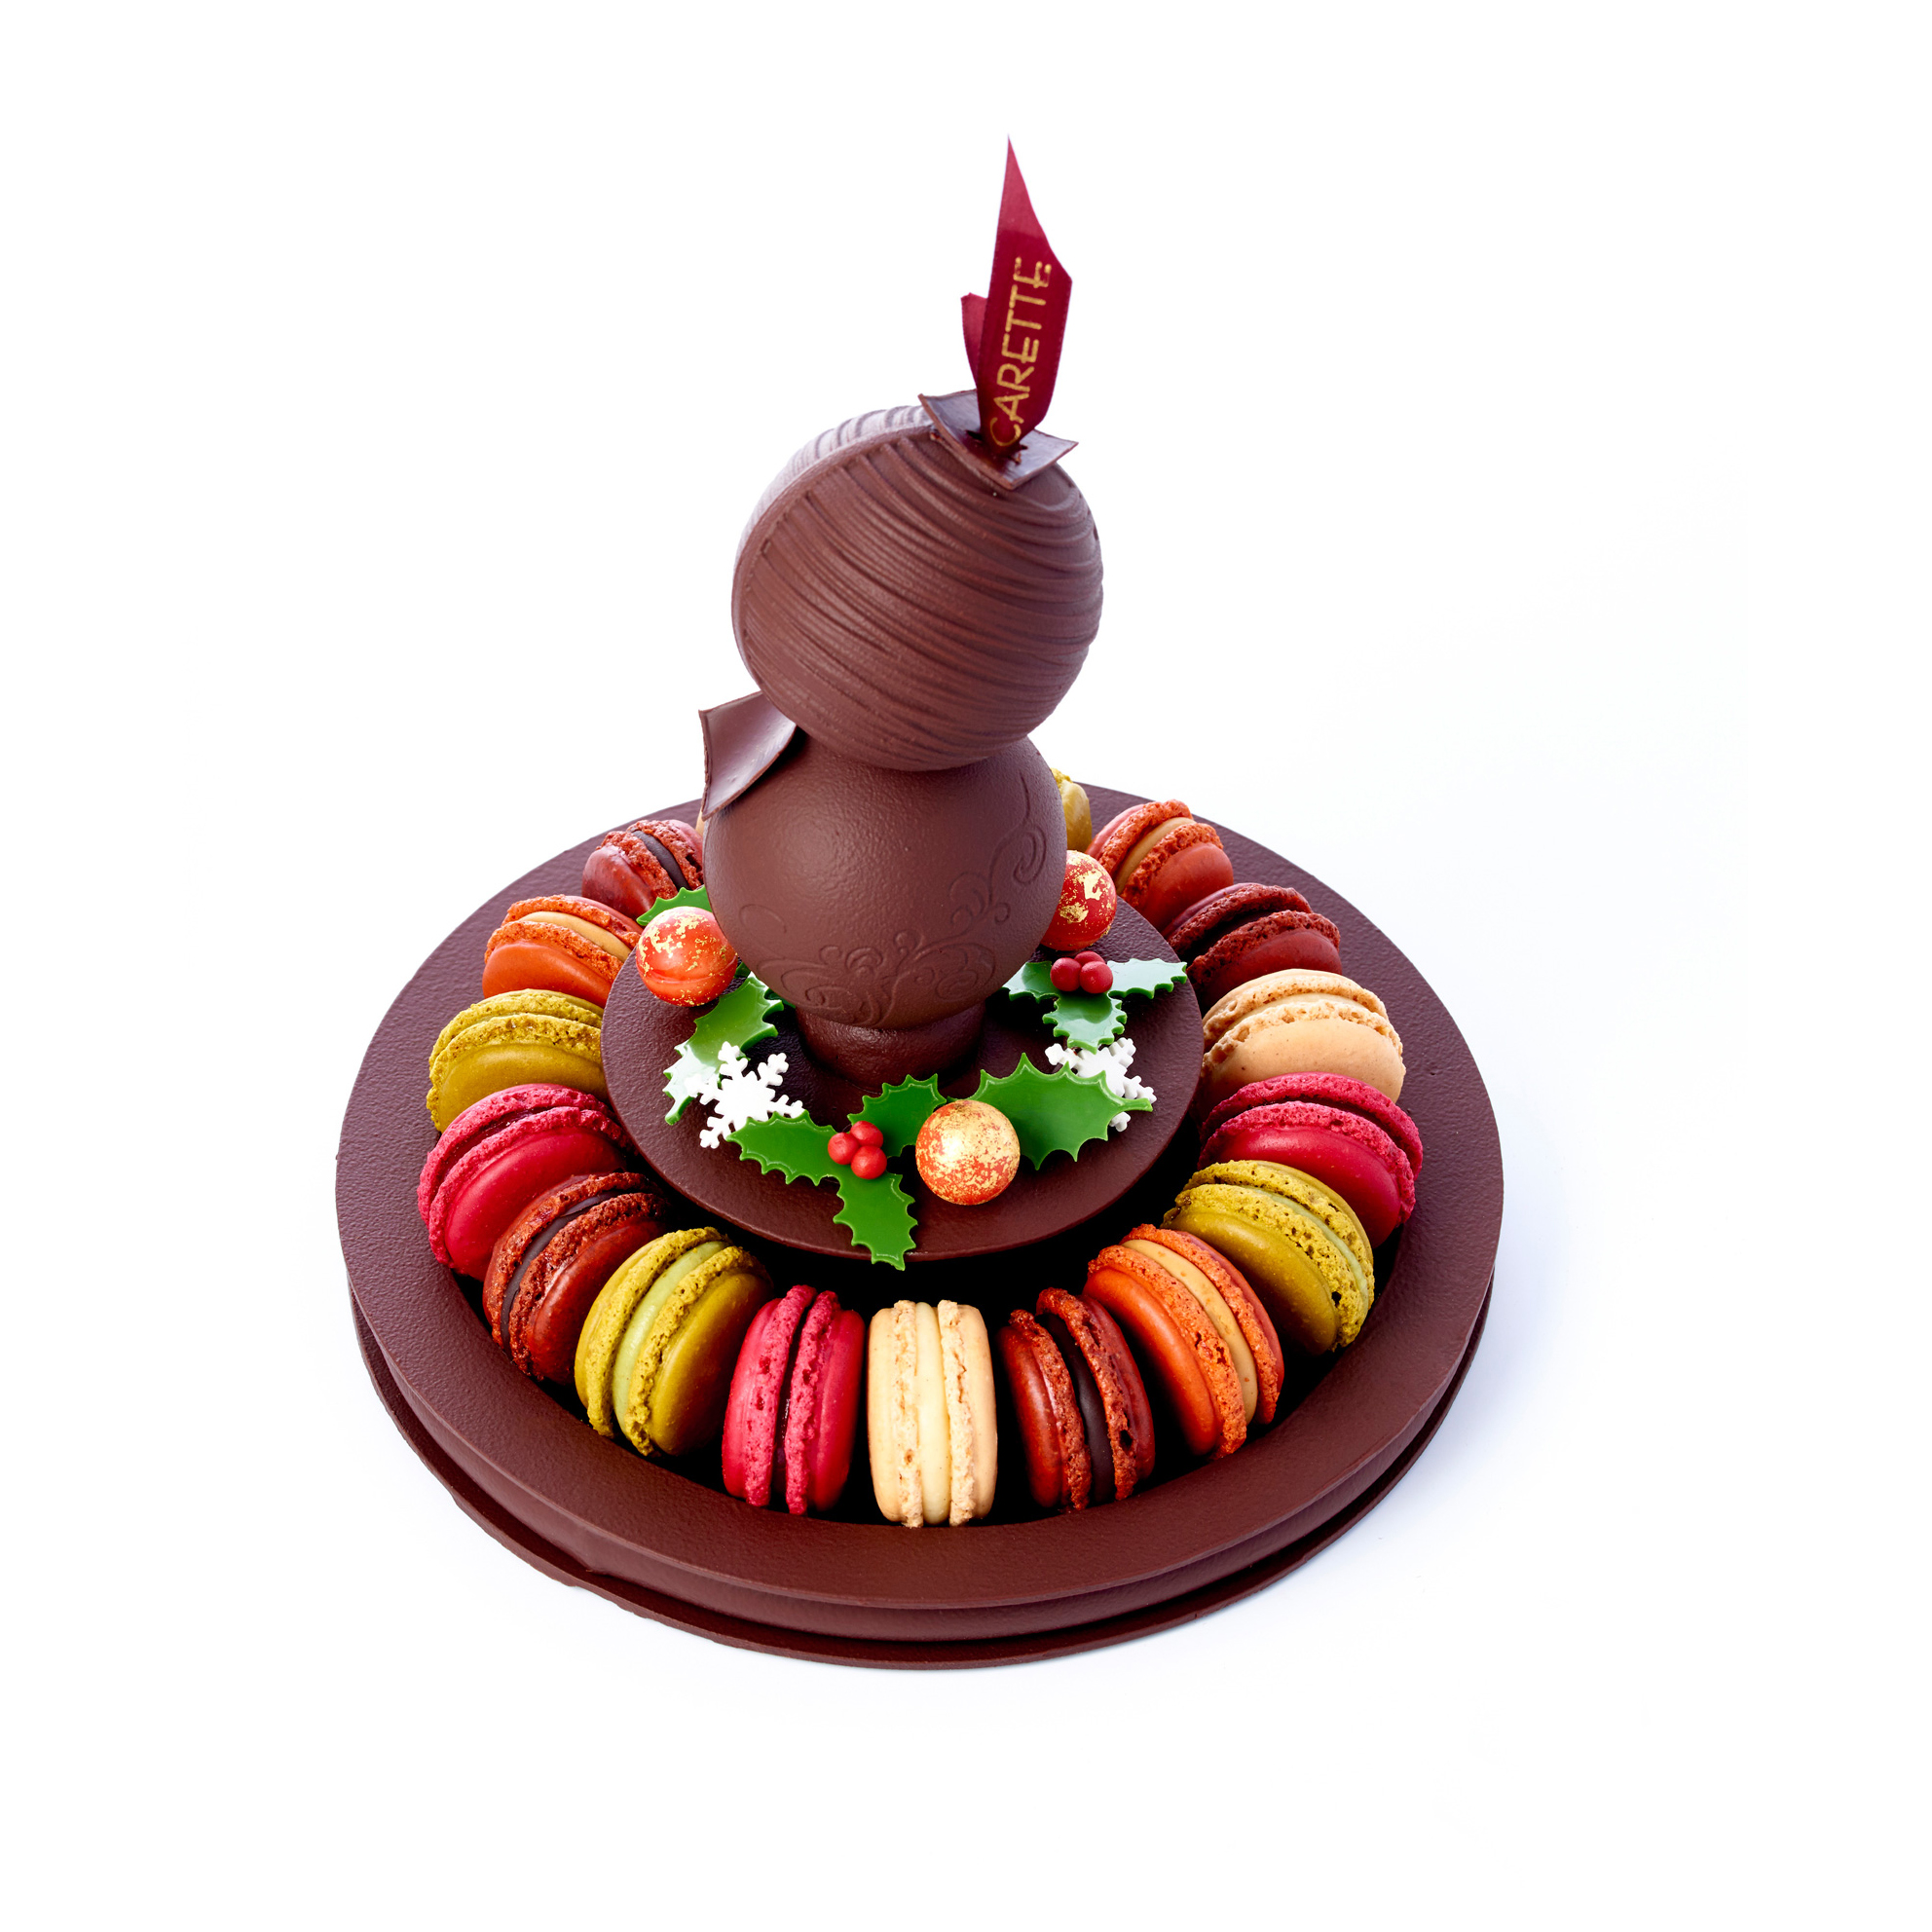 Gourmandise sucree salee noel 2016 carette centre de table for Centre de table gourmandise